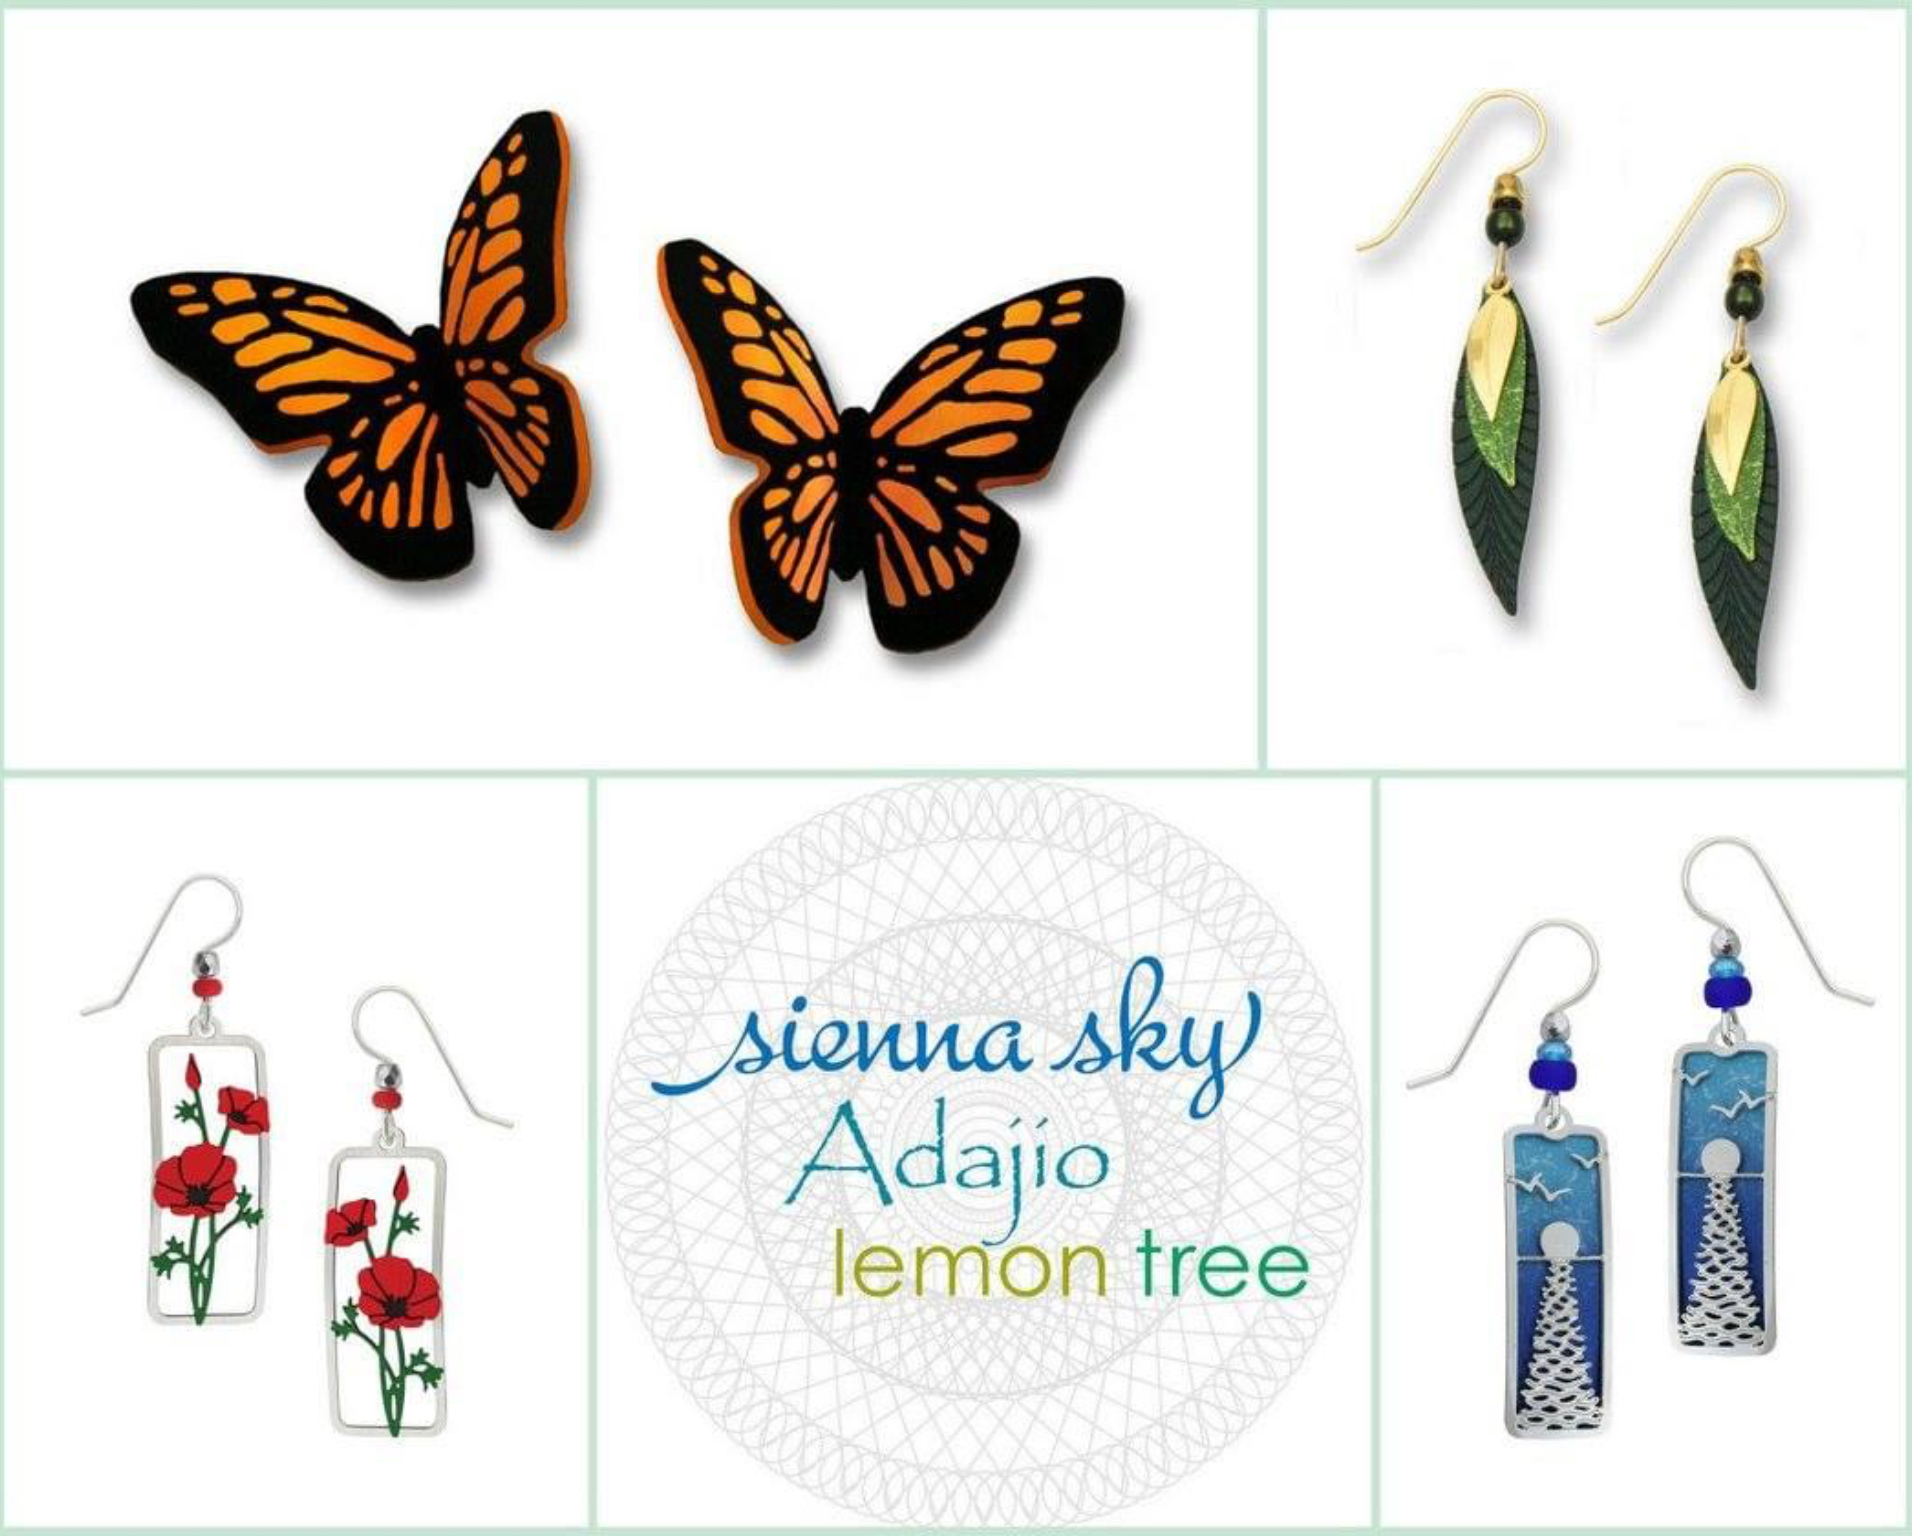 Sienna Sky - Adagio - Lemon Tree